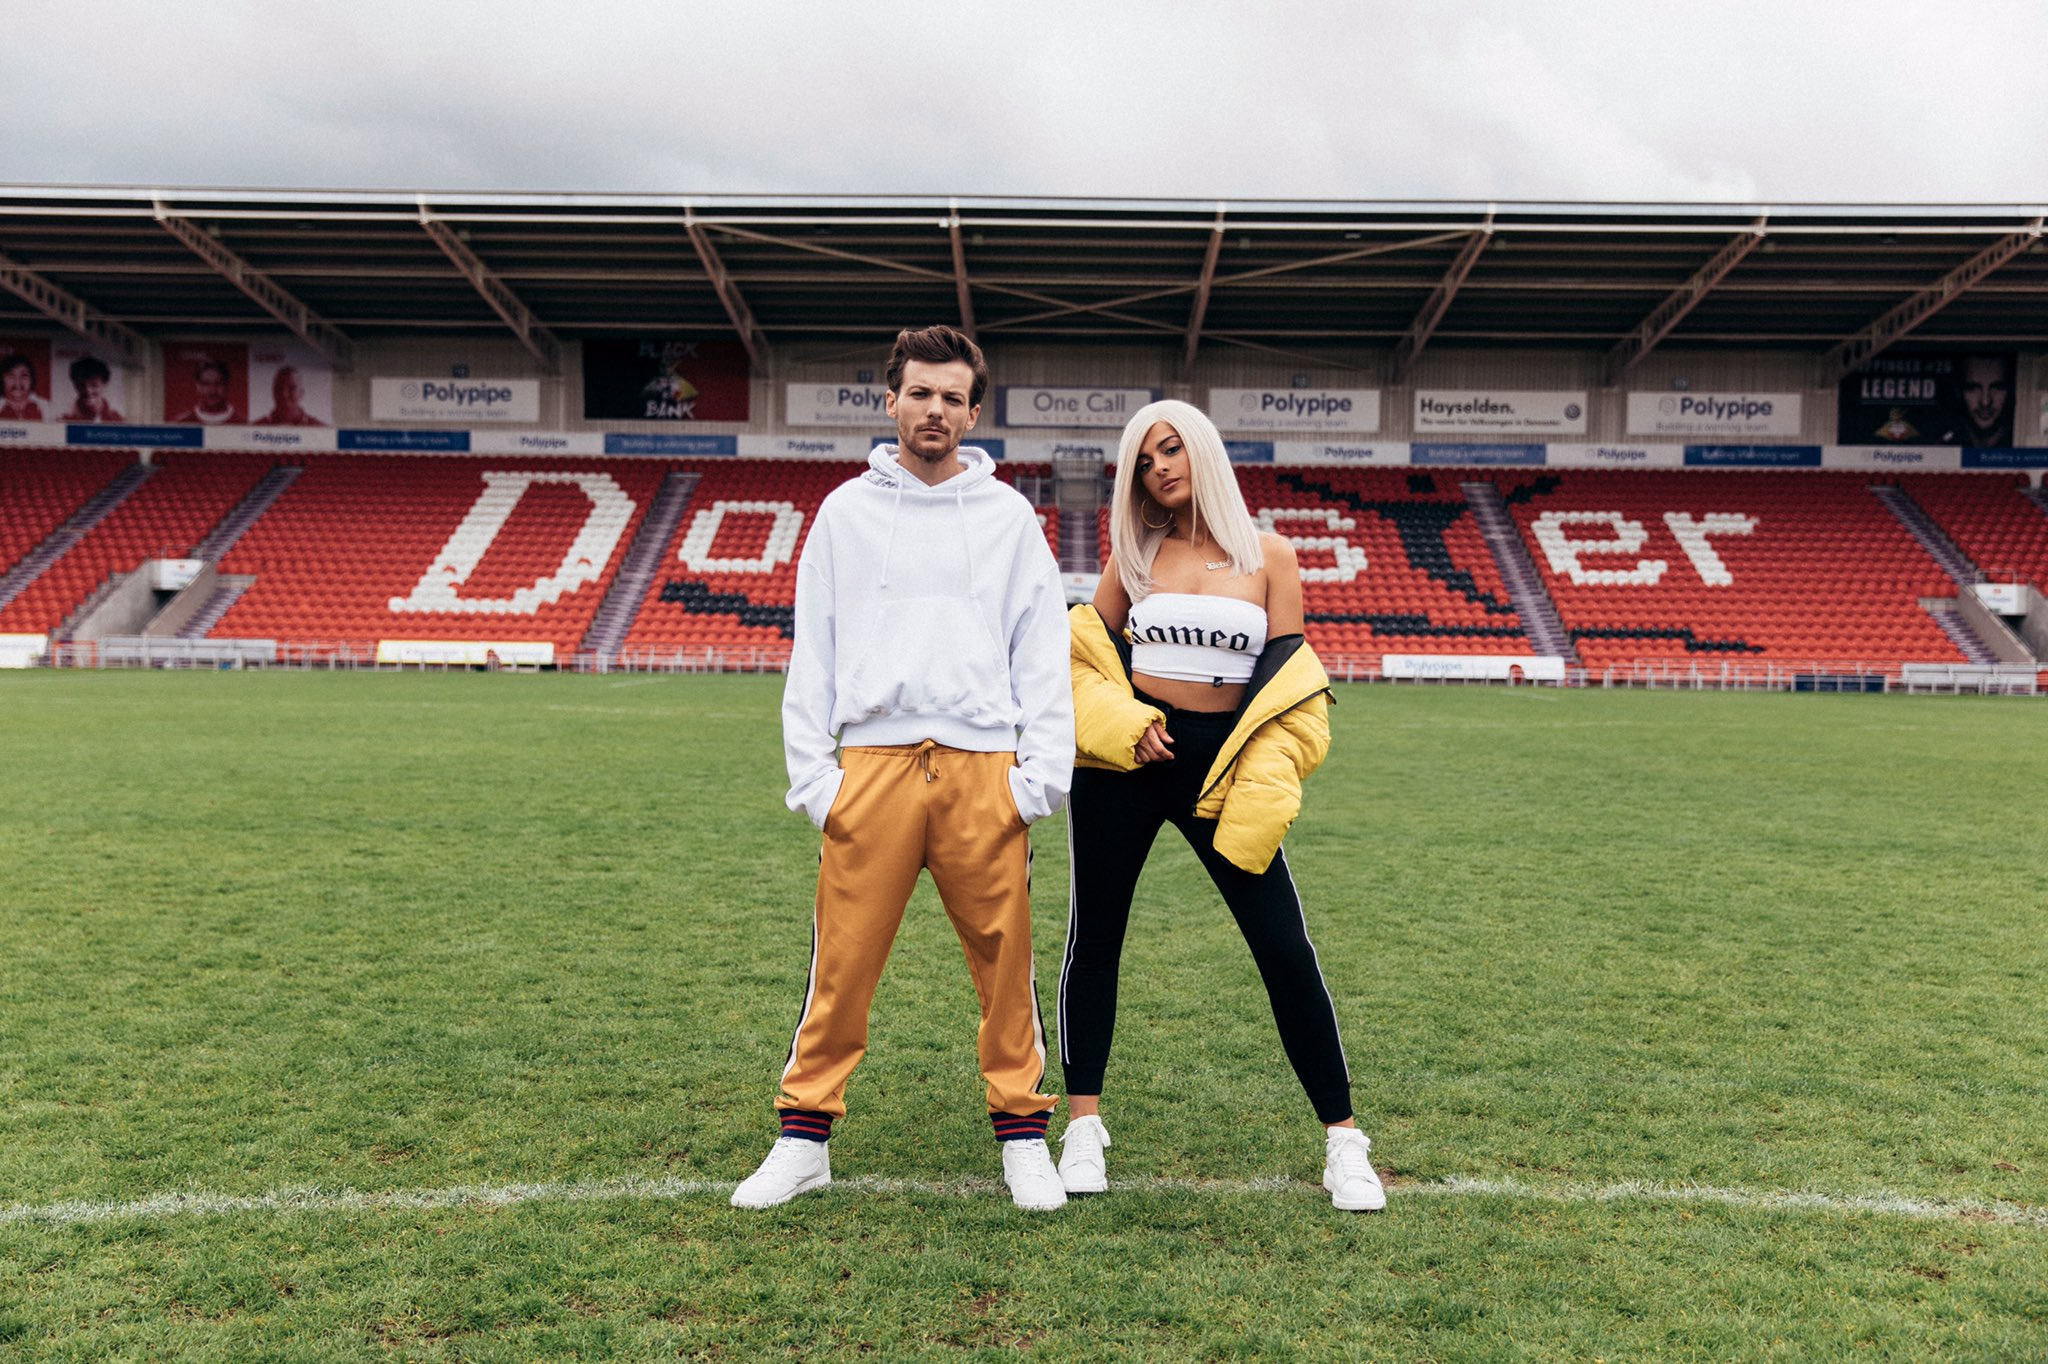 #BackToYou TOMORROW.. For a lil sneak peek, head over to https://t.co/fXGYdsCUi1 ⚽️❤️��@Louis_Tomlinson https://t.co/7QqeKYFX2O